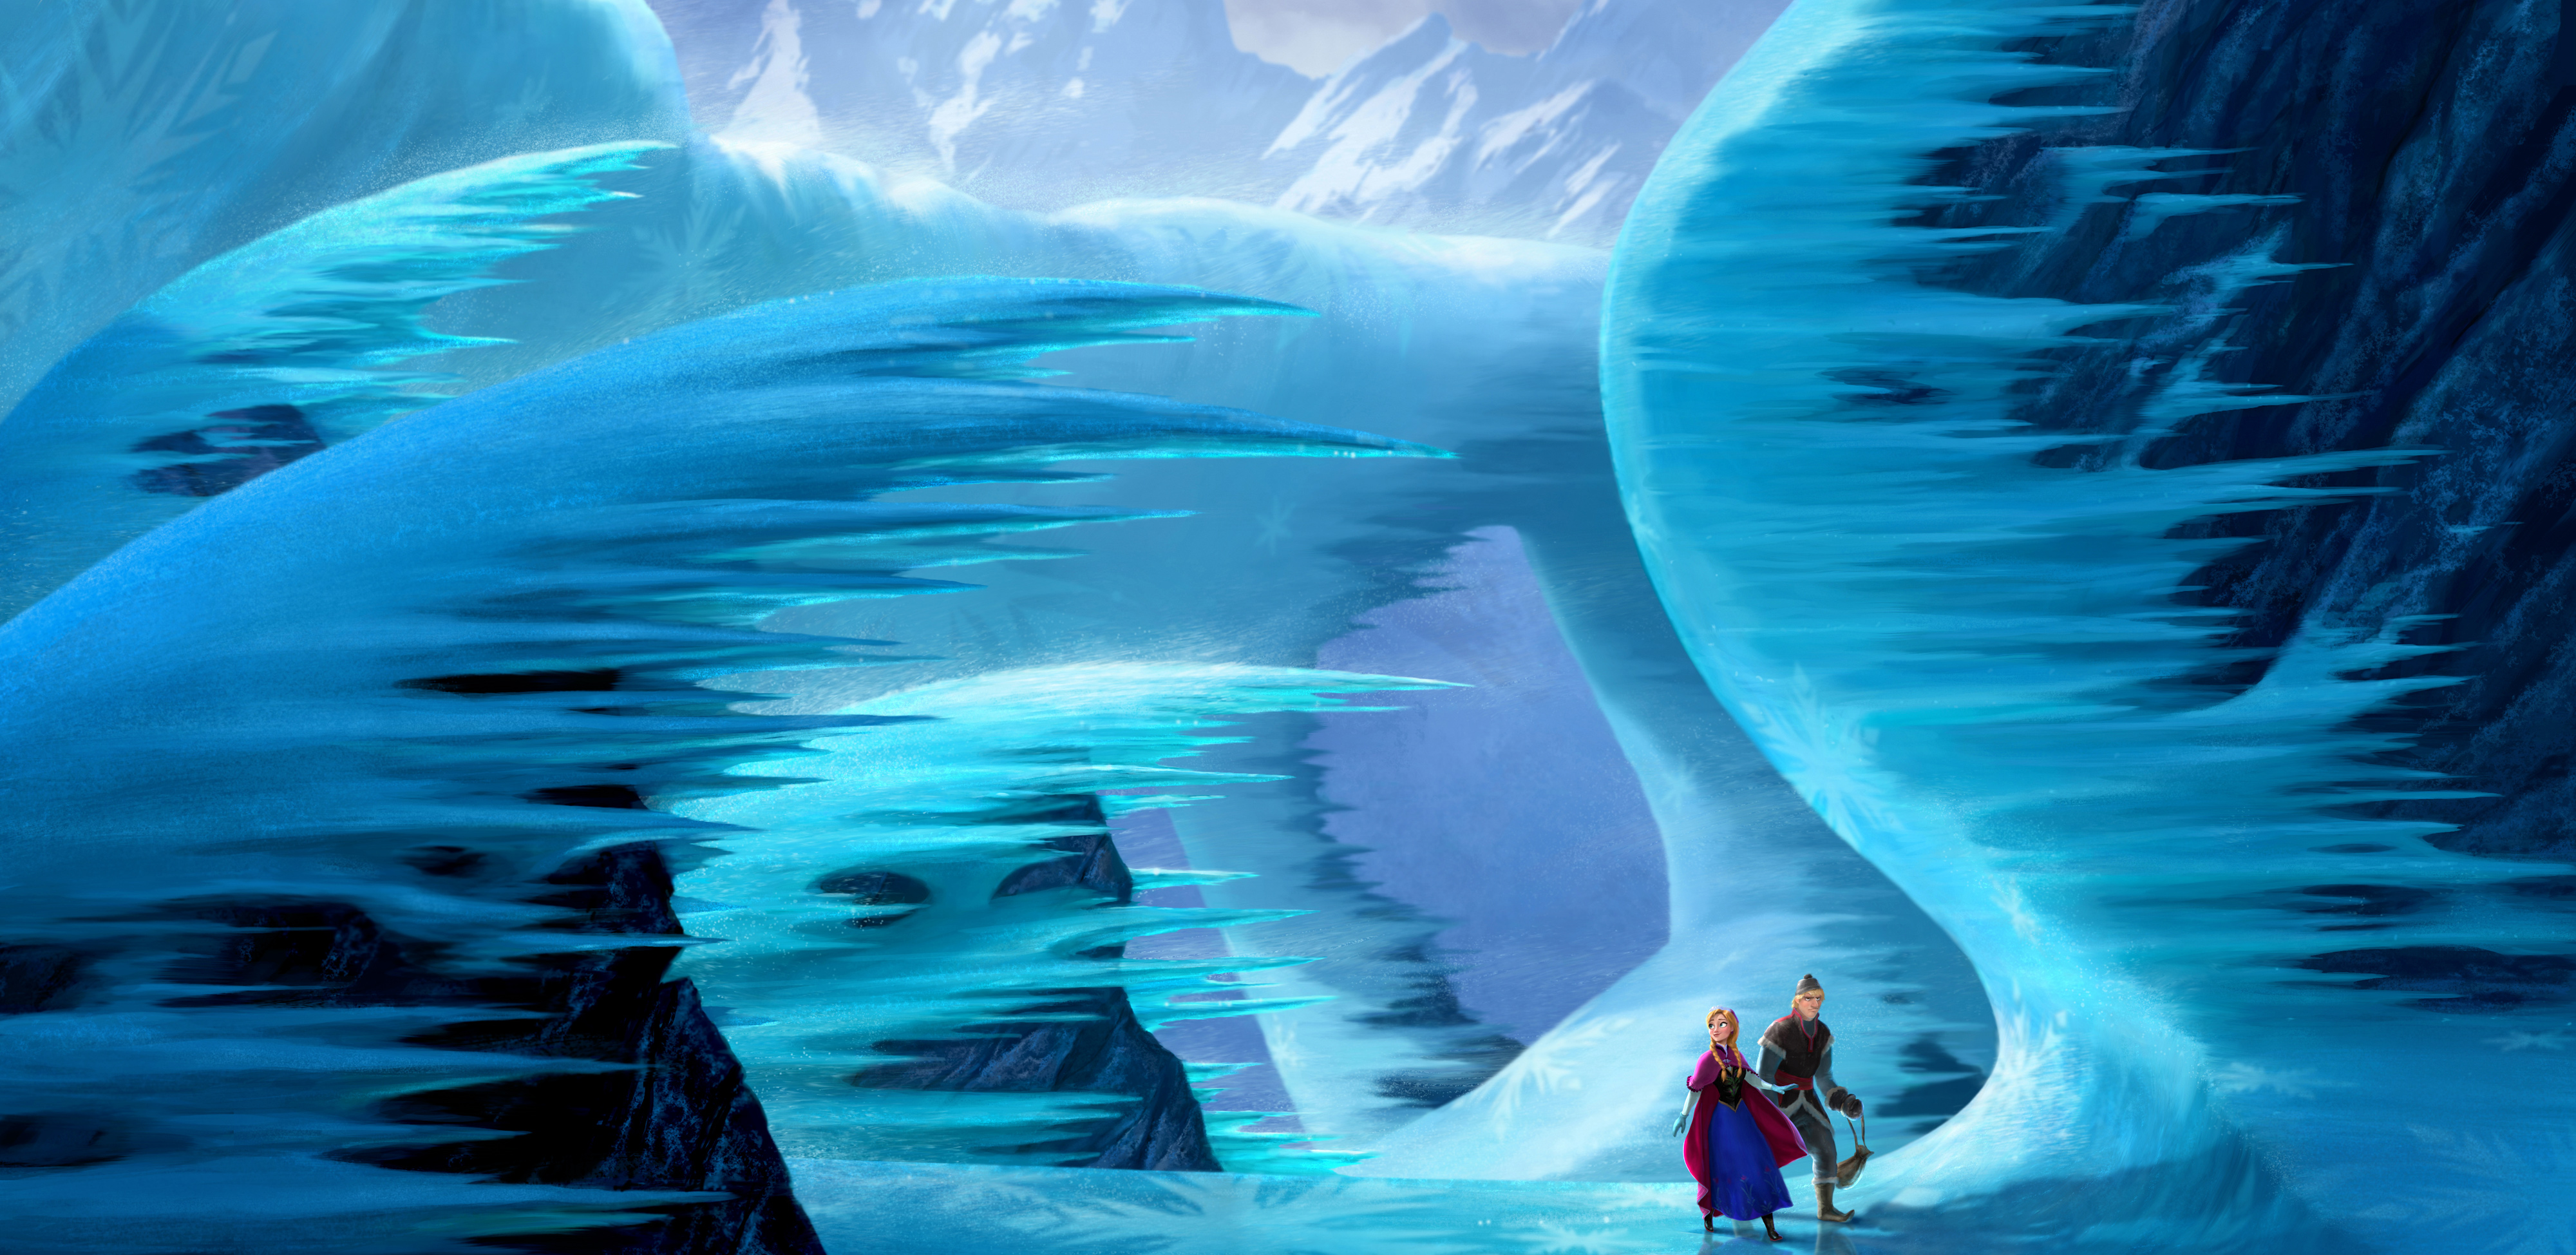 First look at disney s next animated movie frozen is well frozen